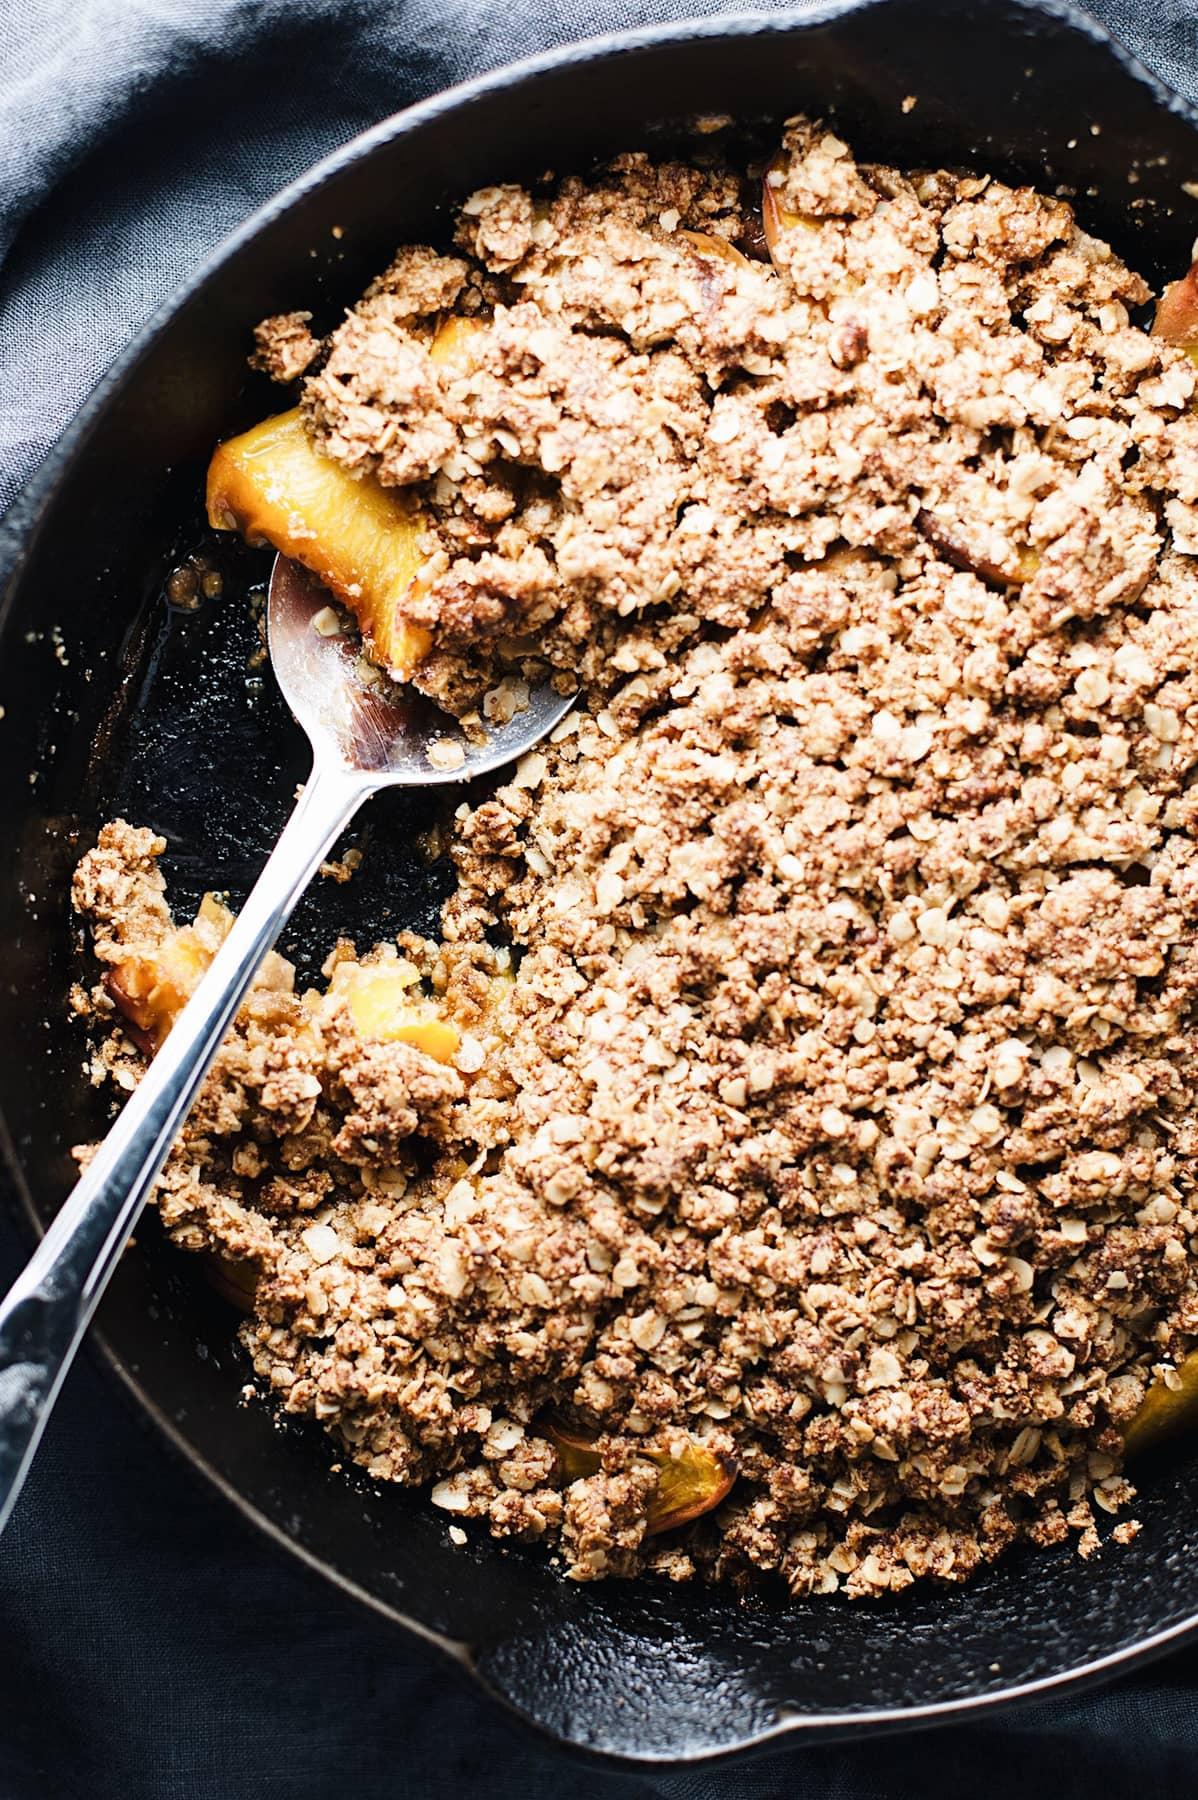 a cast iron skillet with gluten free peach crisp and a spoon in it